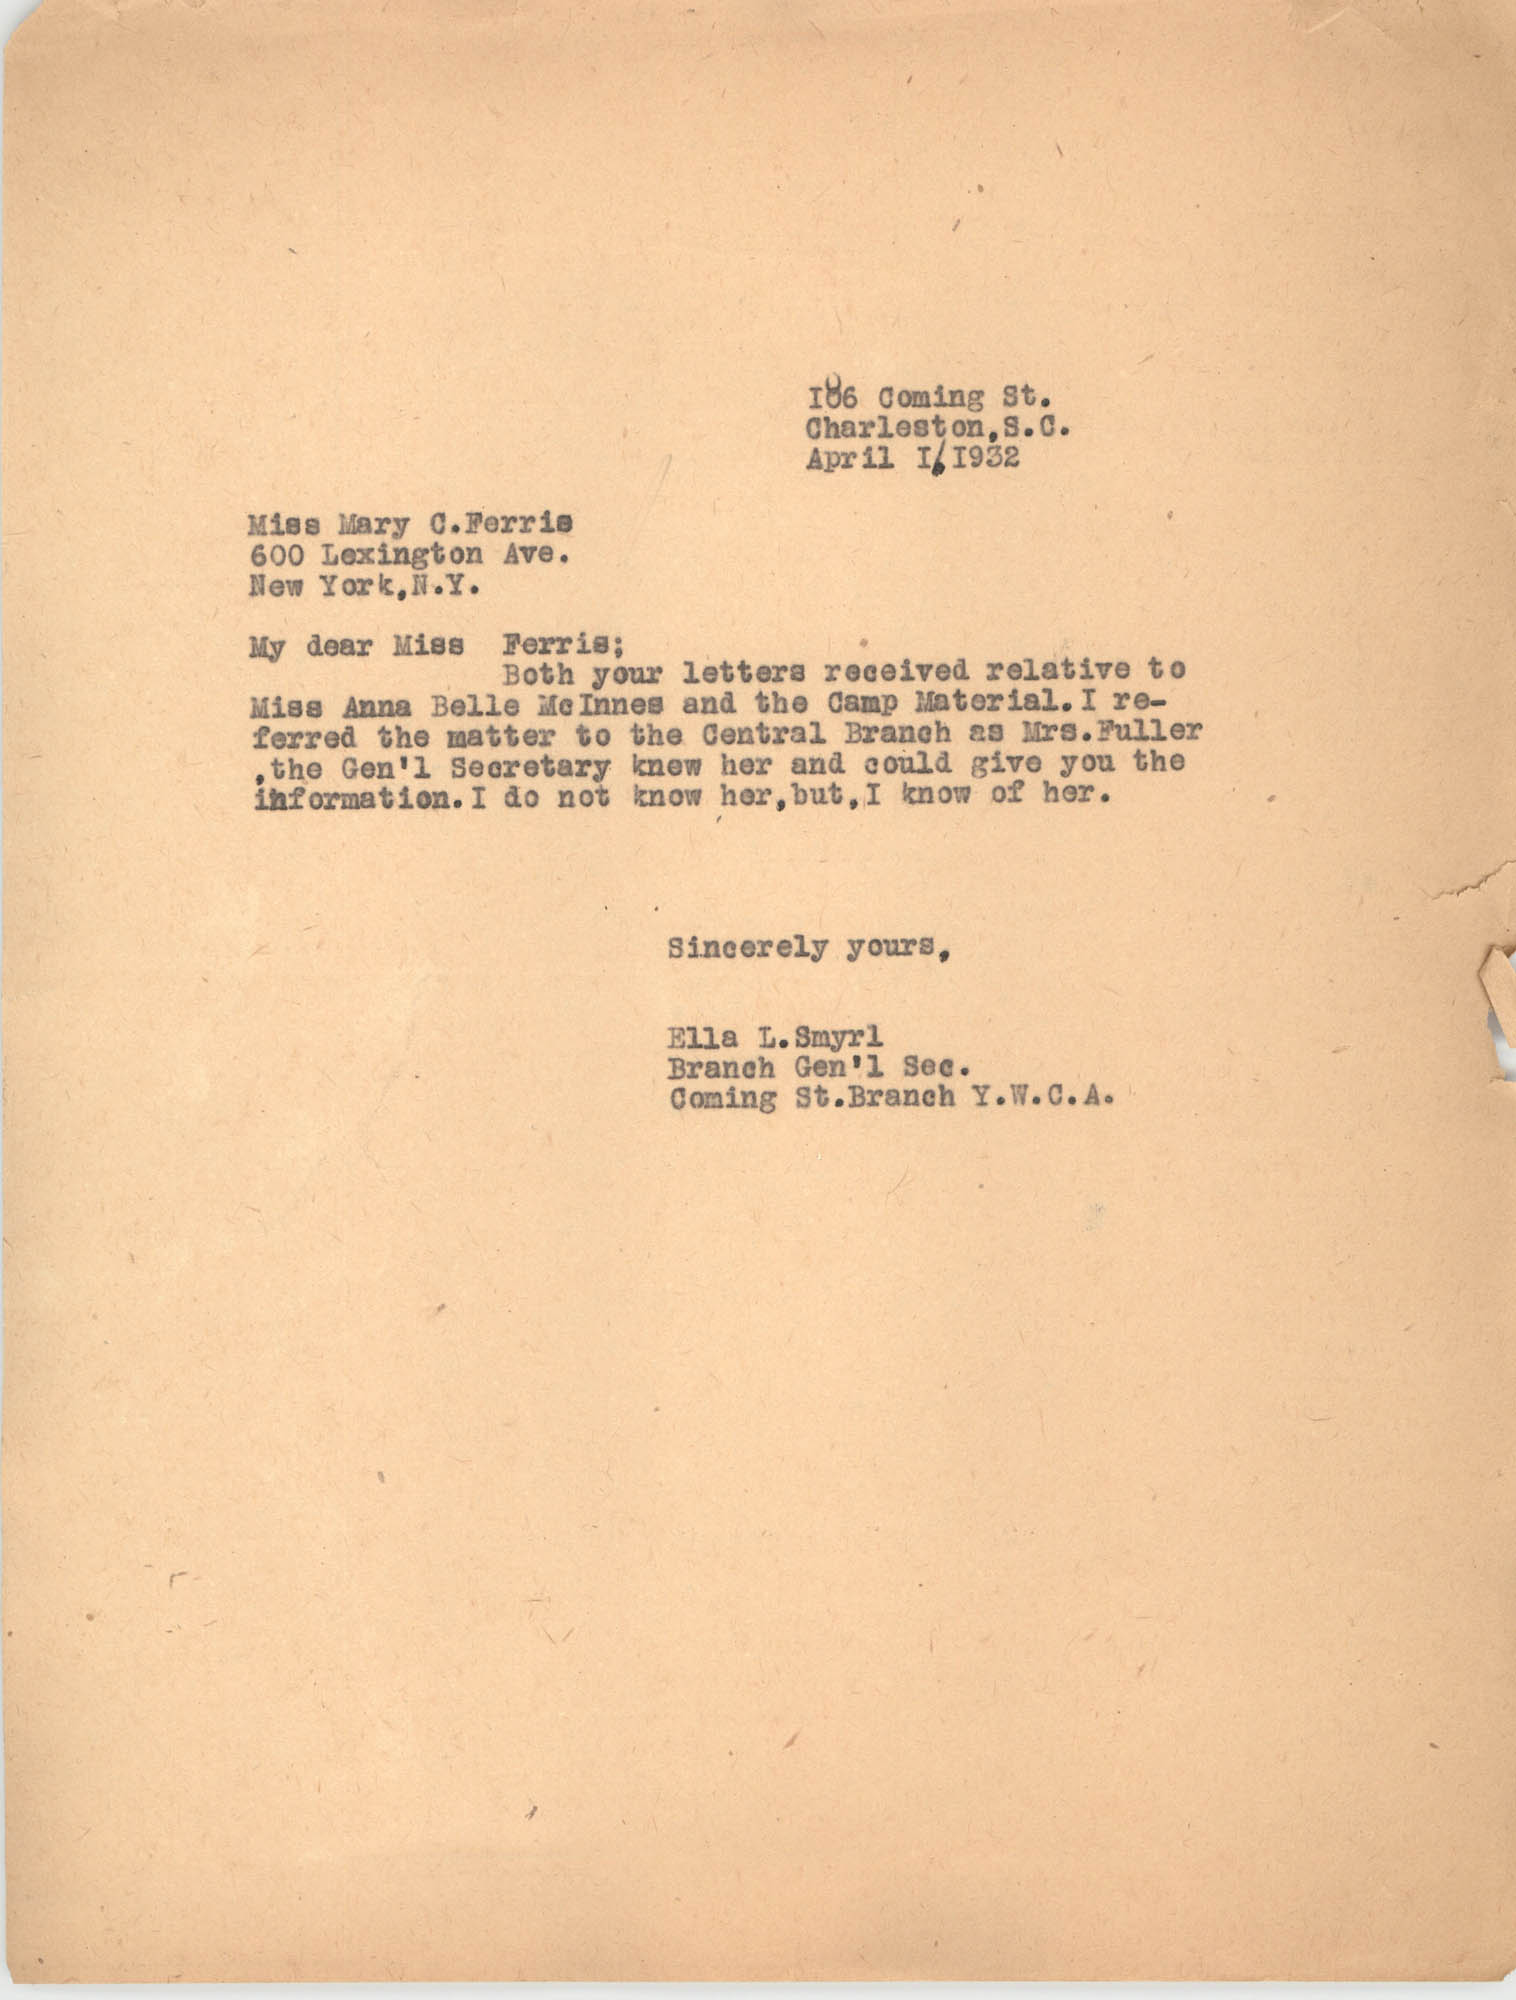 Letter from Ella L. Smyrl to Mary C. Ferris, April 1, 1932